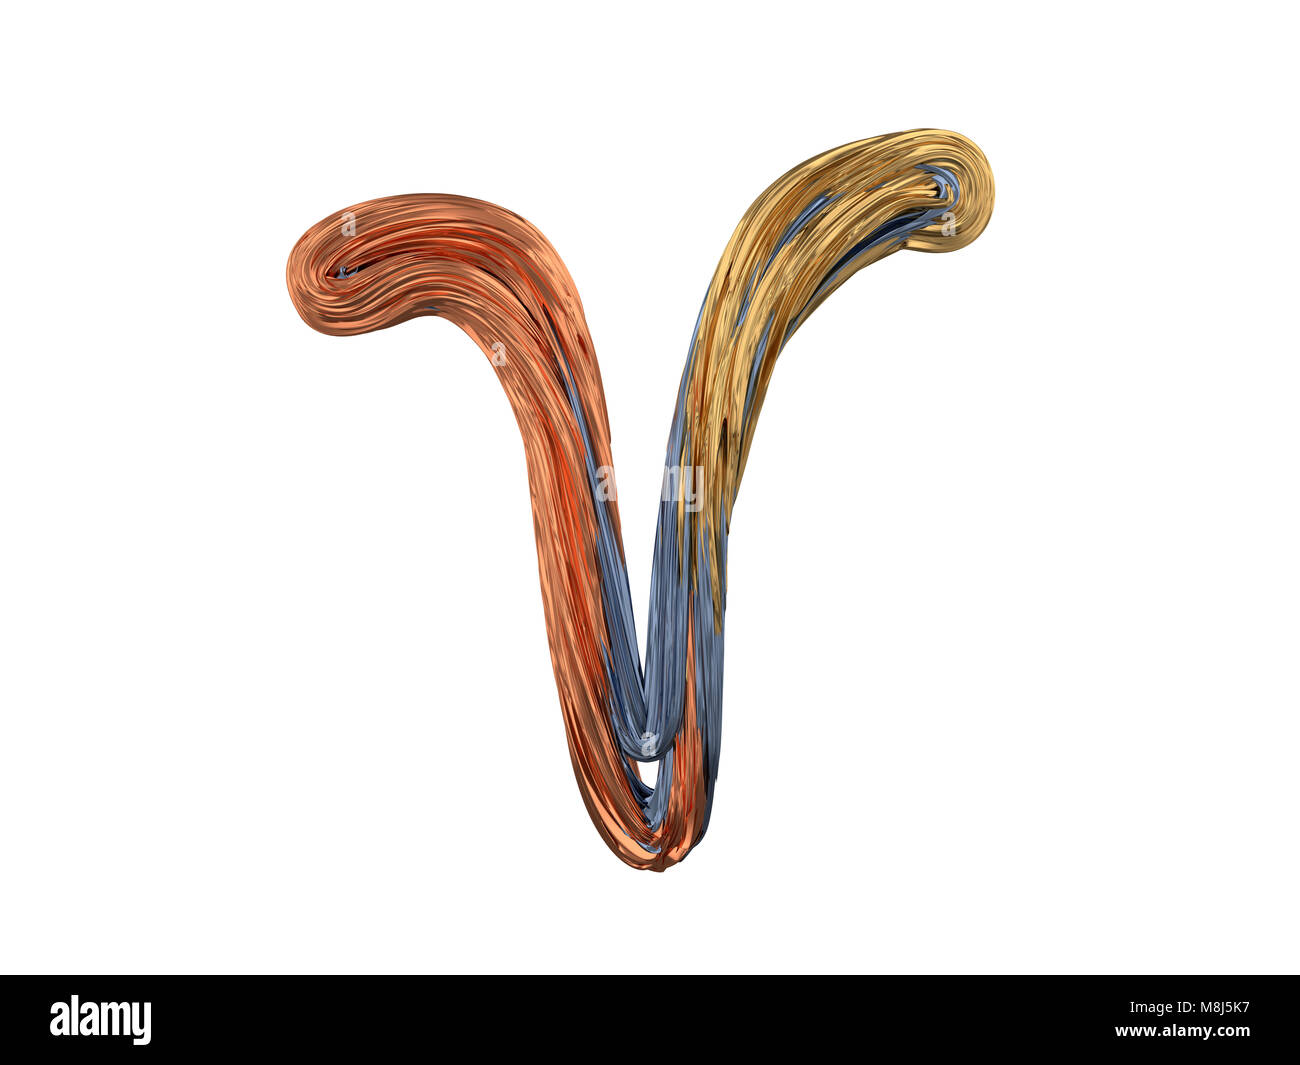 Aries Zodiac Sign Abstract Metal Symbol 3d Rendering Stock Photo